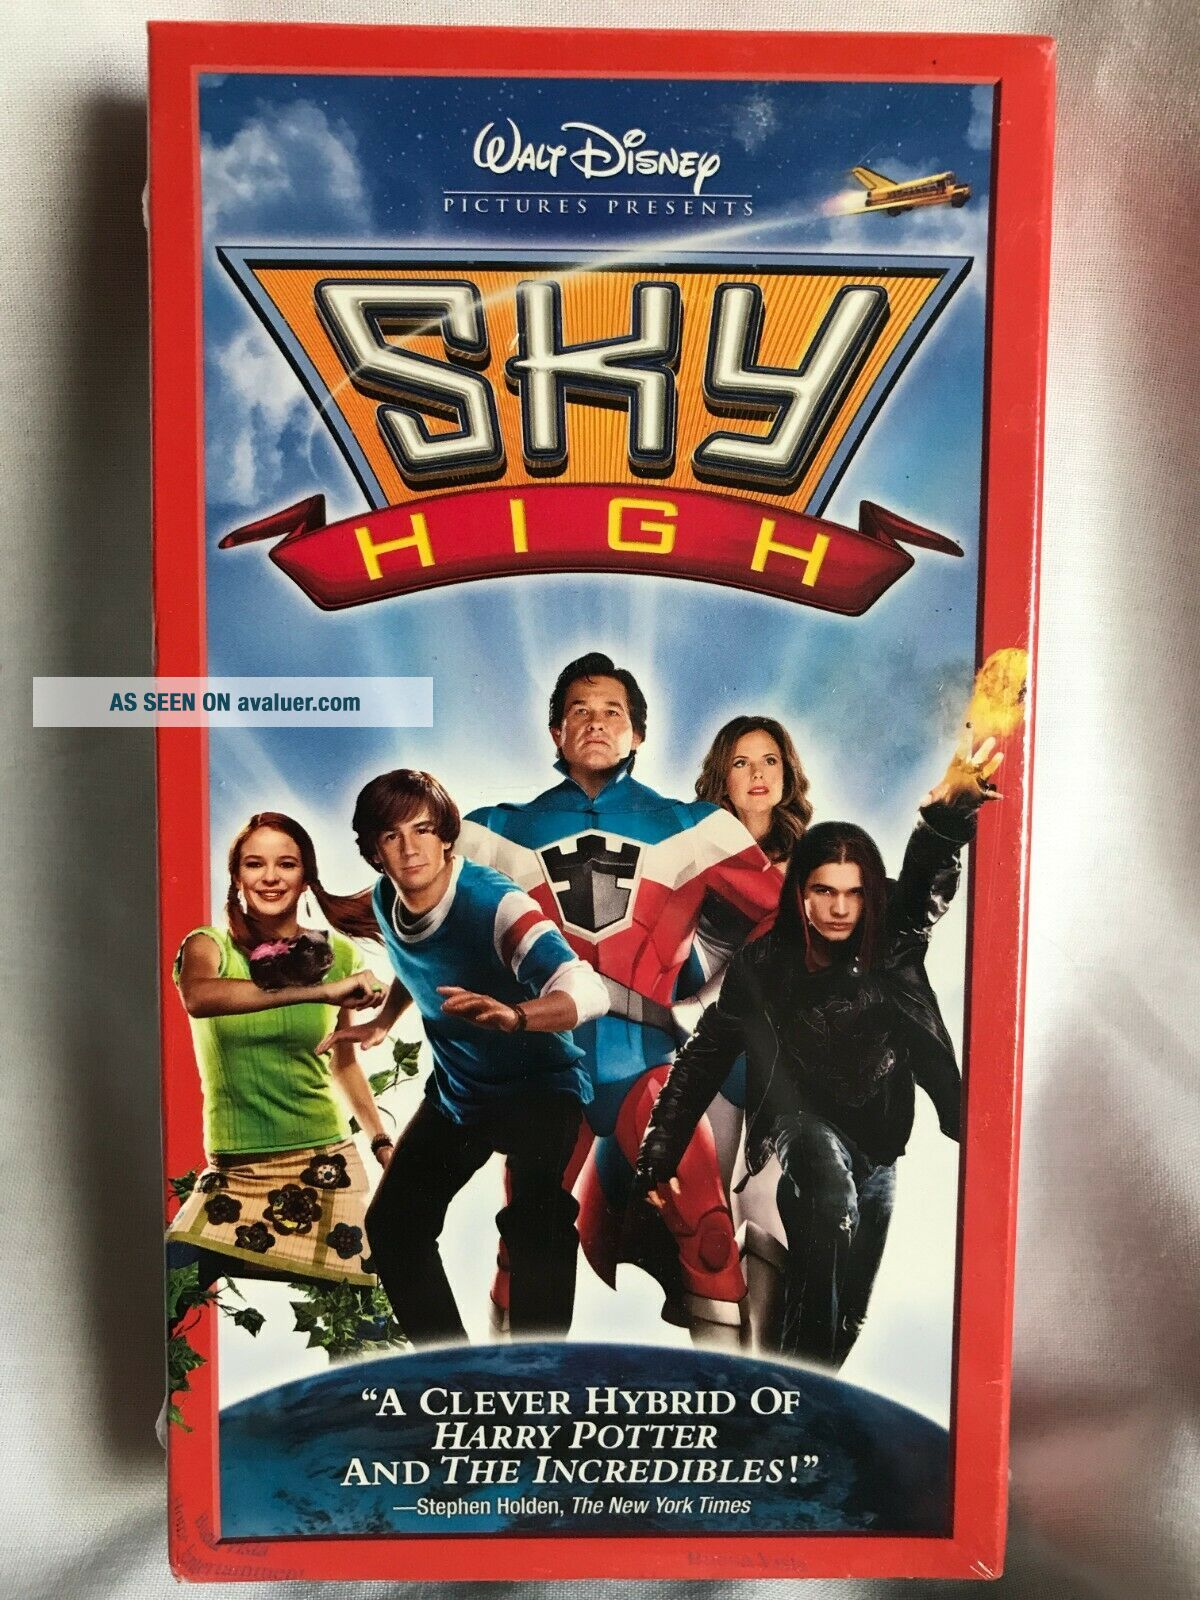 Factory Disney Sky HIgh VHS Tape - and Extremely Rare